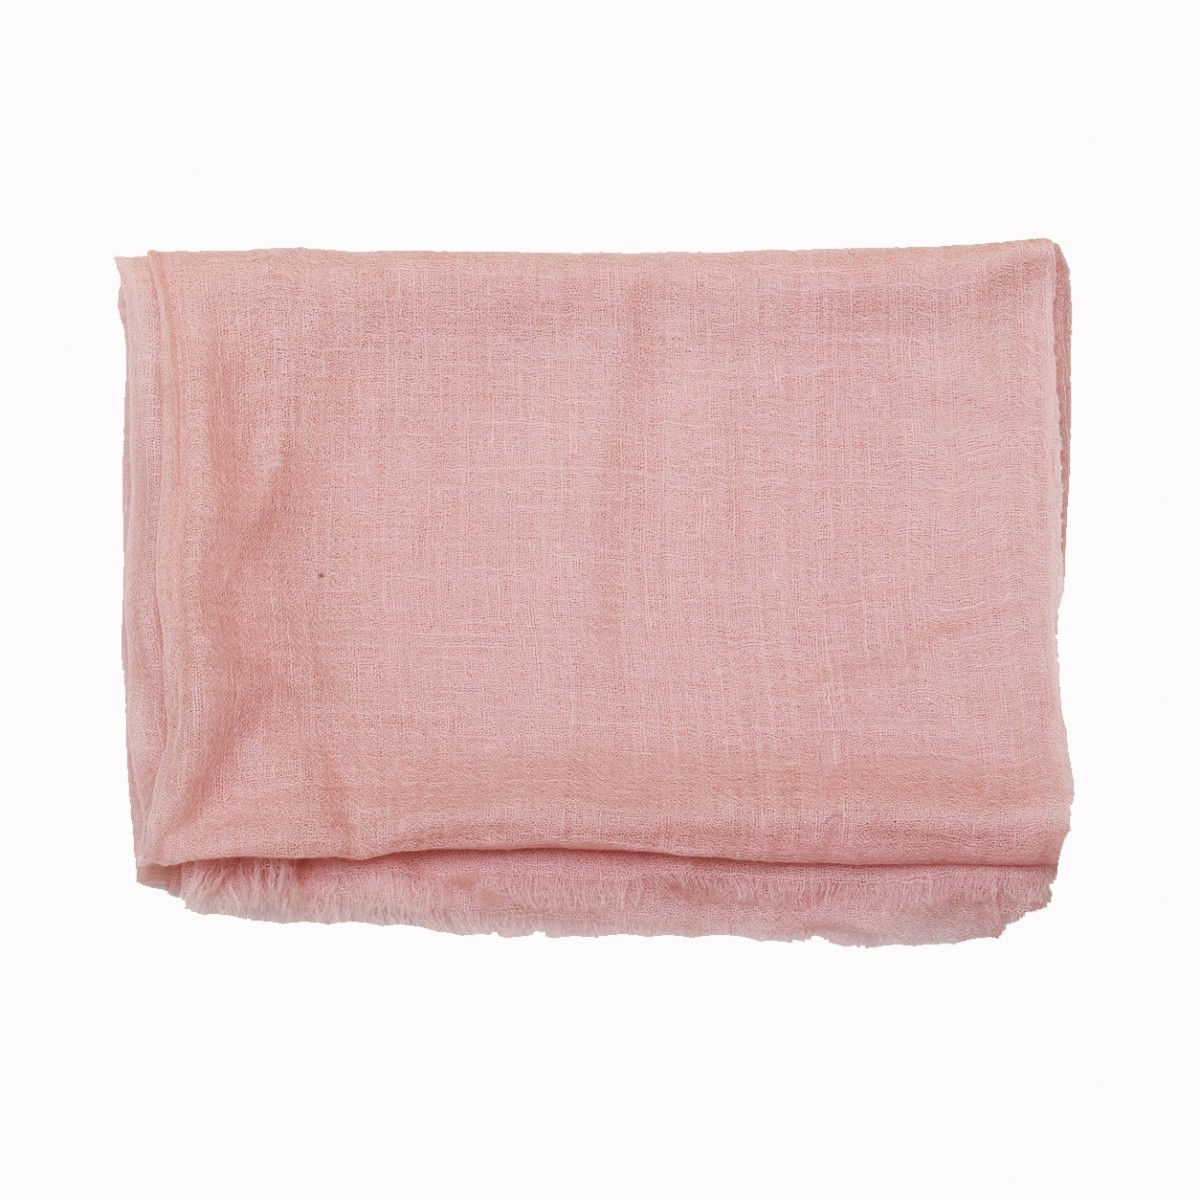 Dusty pink sheer pashmina scarf